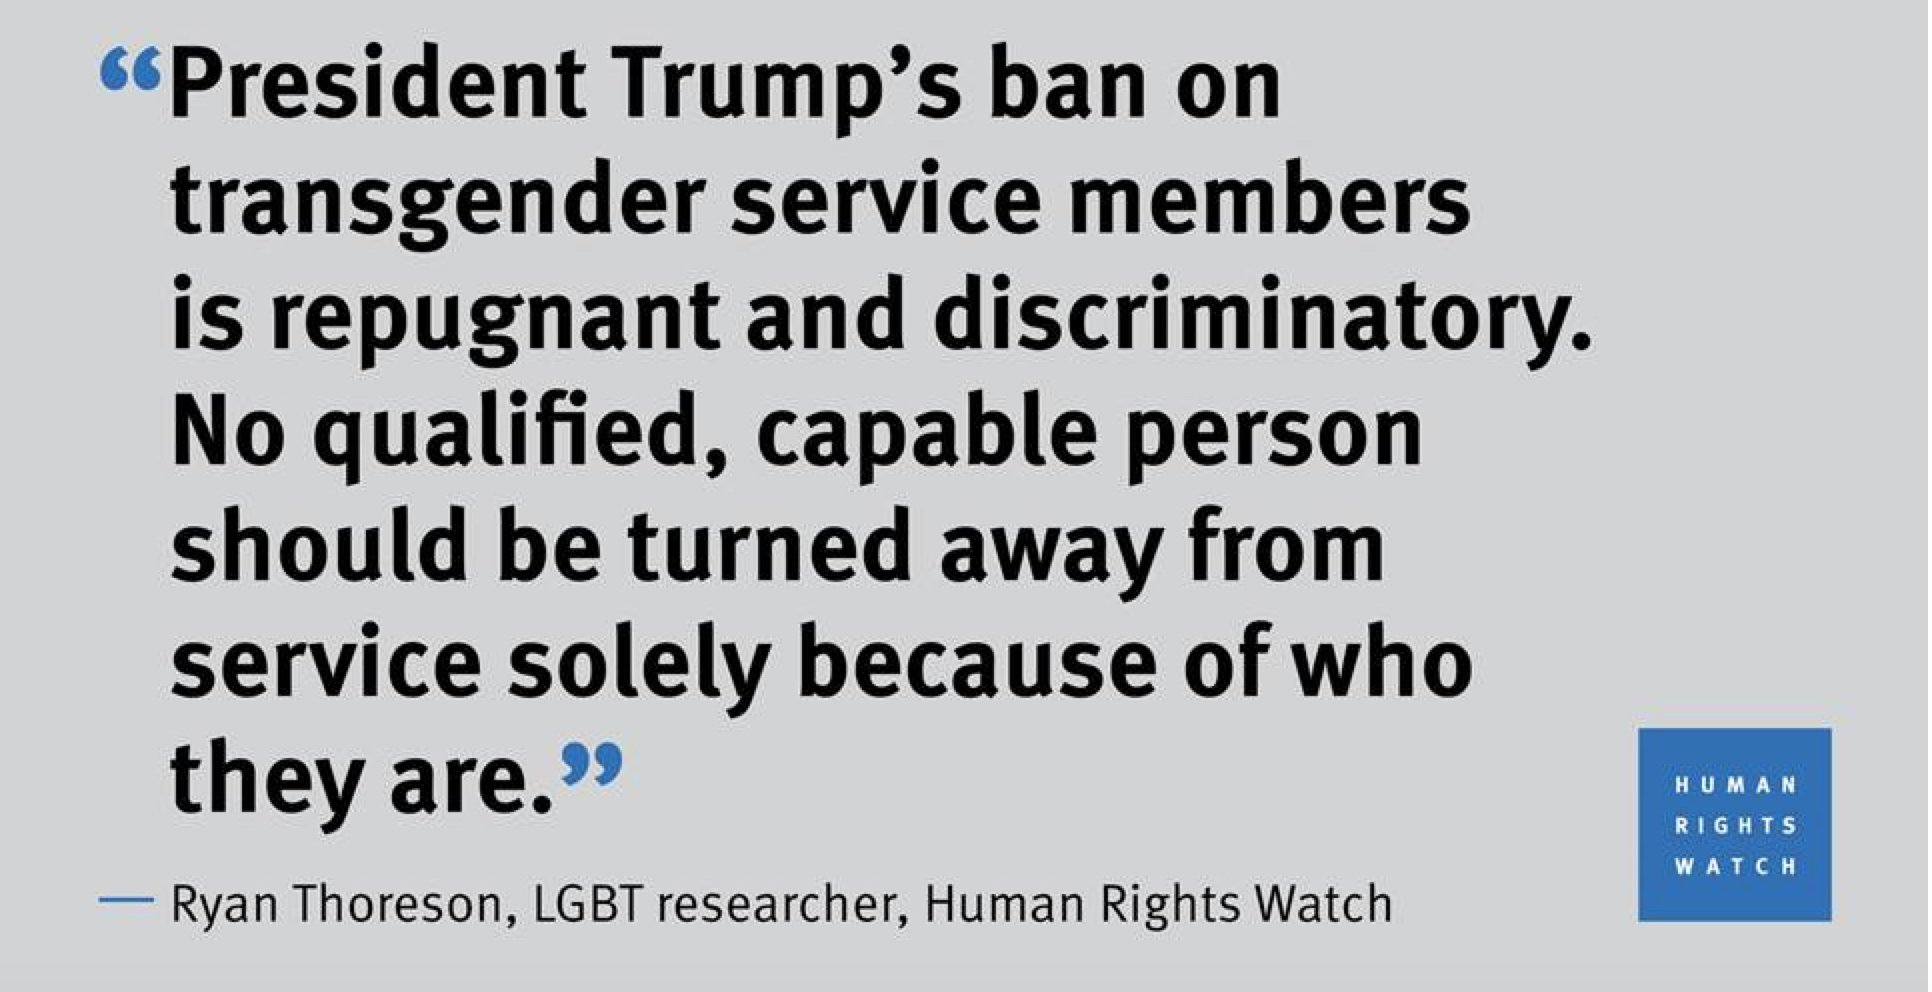 HRW Daily Brief - Trump announces ban of transgender people from military service. https://t.co/U4Tmk4LeTl https://t.co/D7FcZ6yxQv